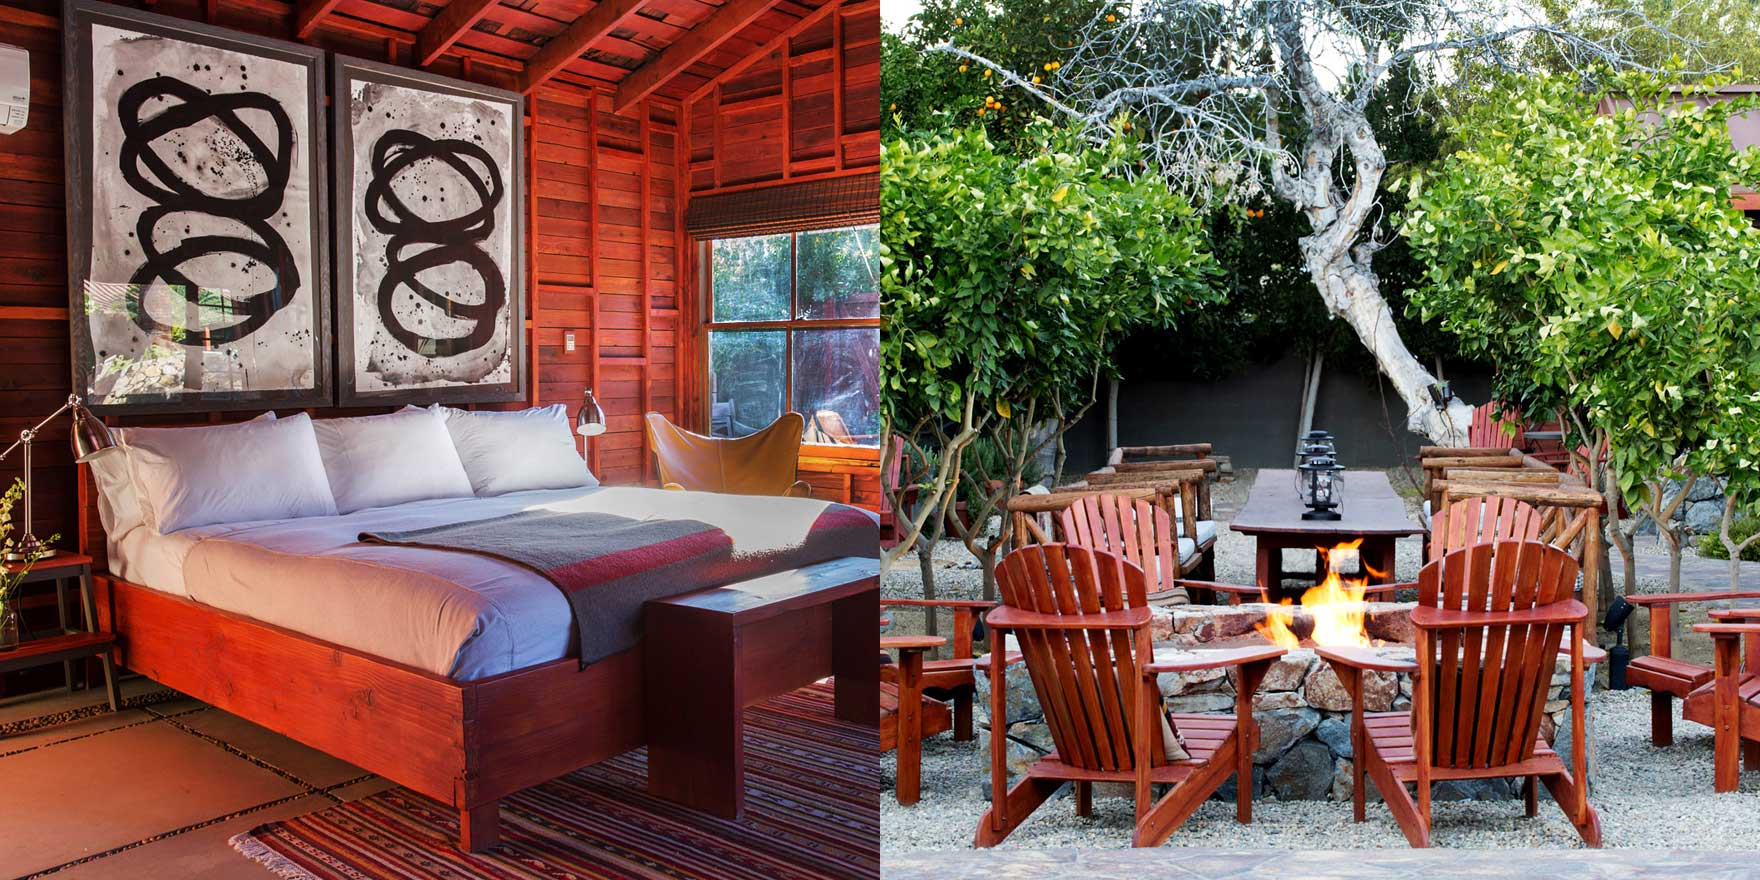 Sparrows Lodge – Boutique Hotel in Palm Springs